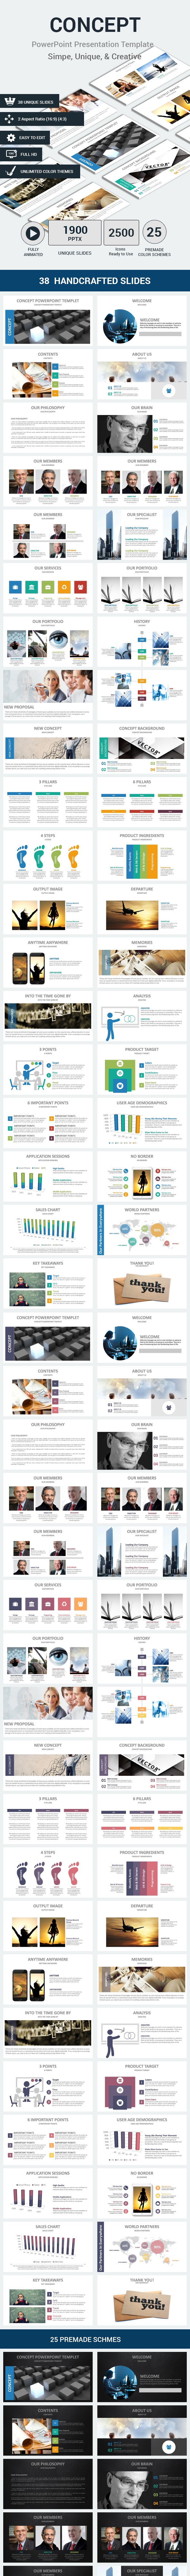 Concept PowerPoint Presentation Template - PowerPoint Templates Presentation Templates